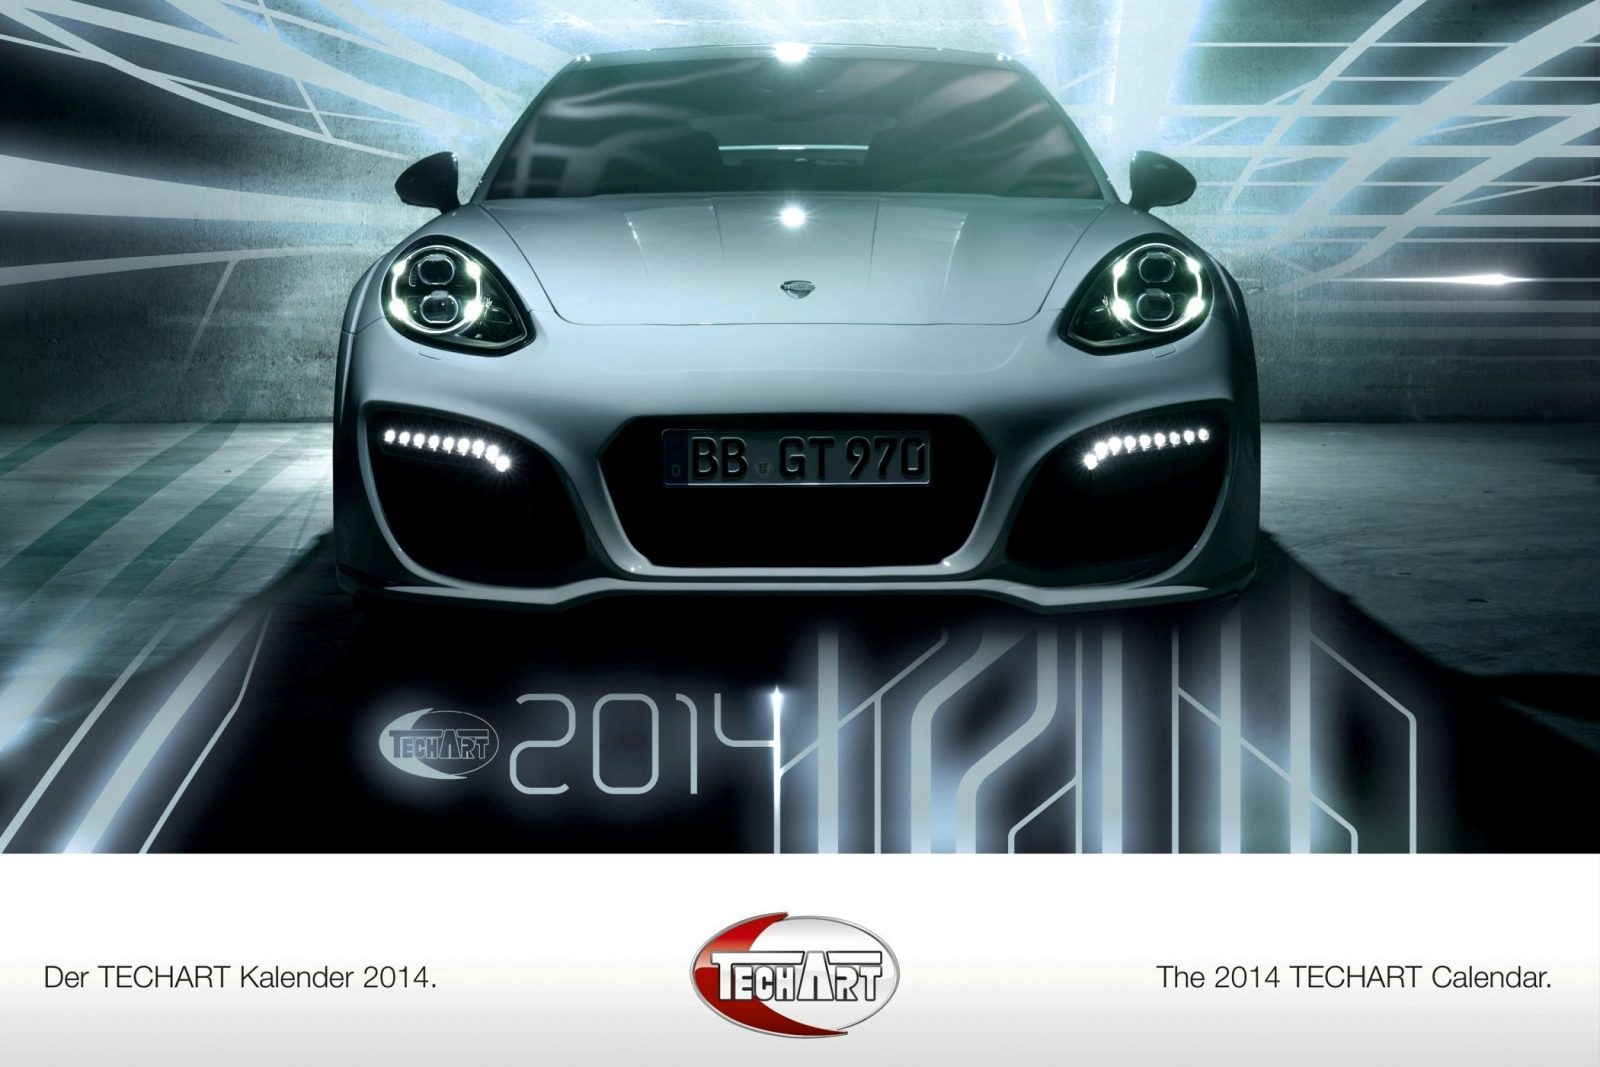 TECHART_Calendar_2014_Covera